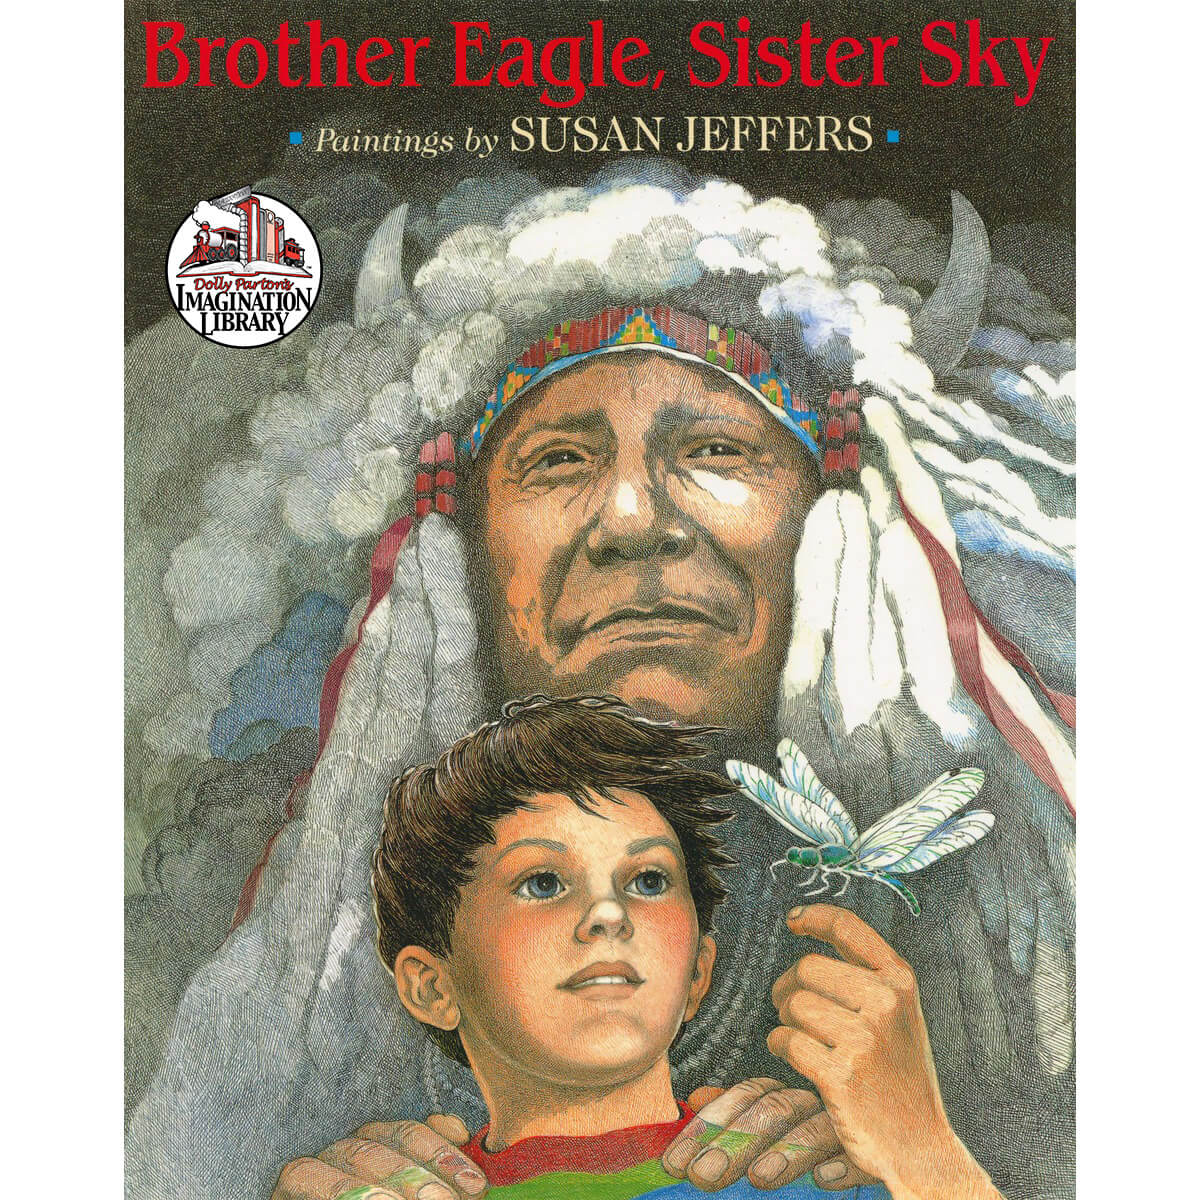 Brother Eagle Sister Sky - Dolly Parton's Imagination Library